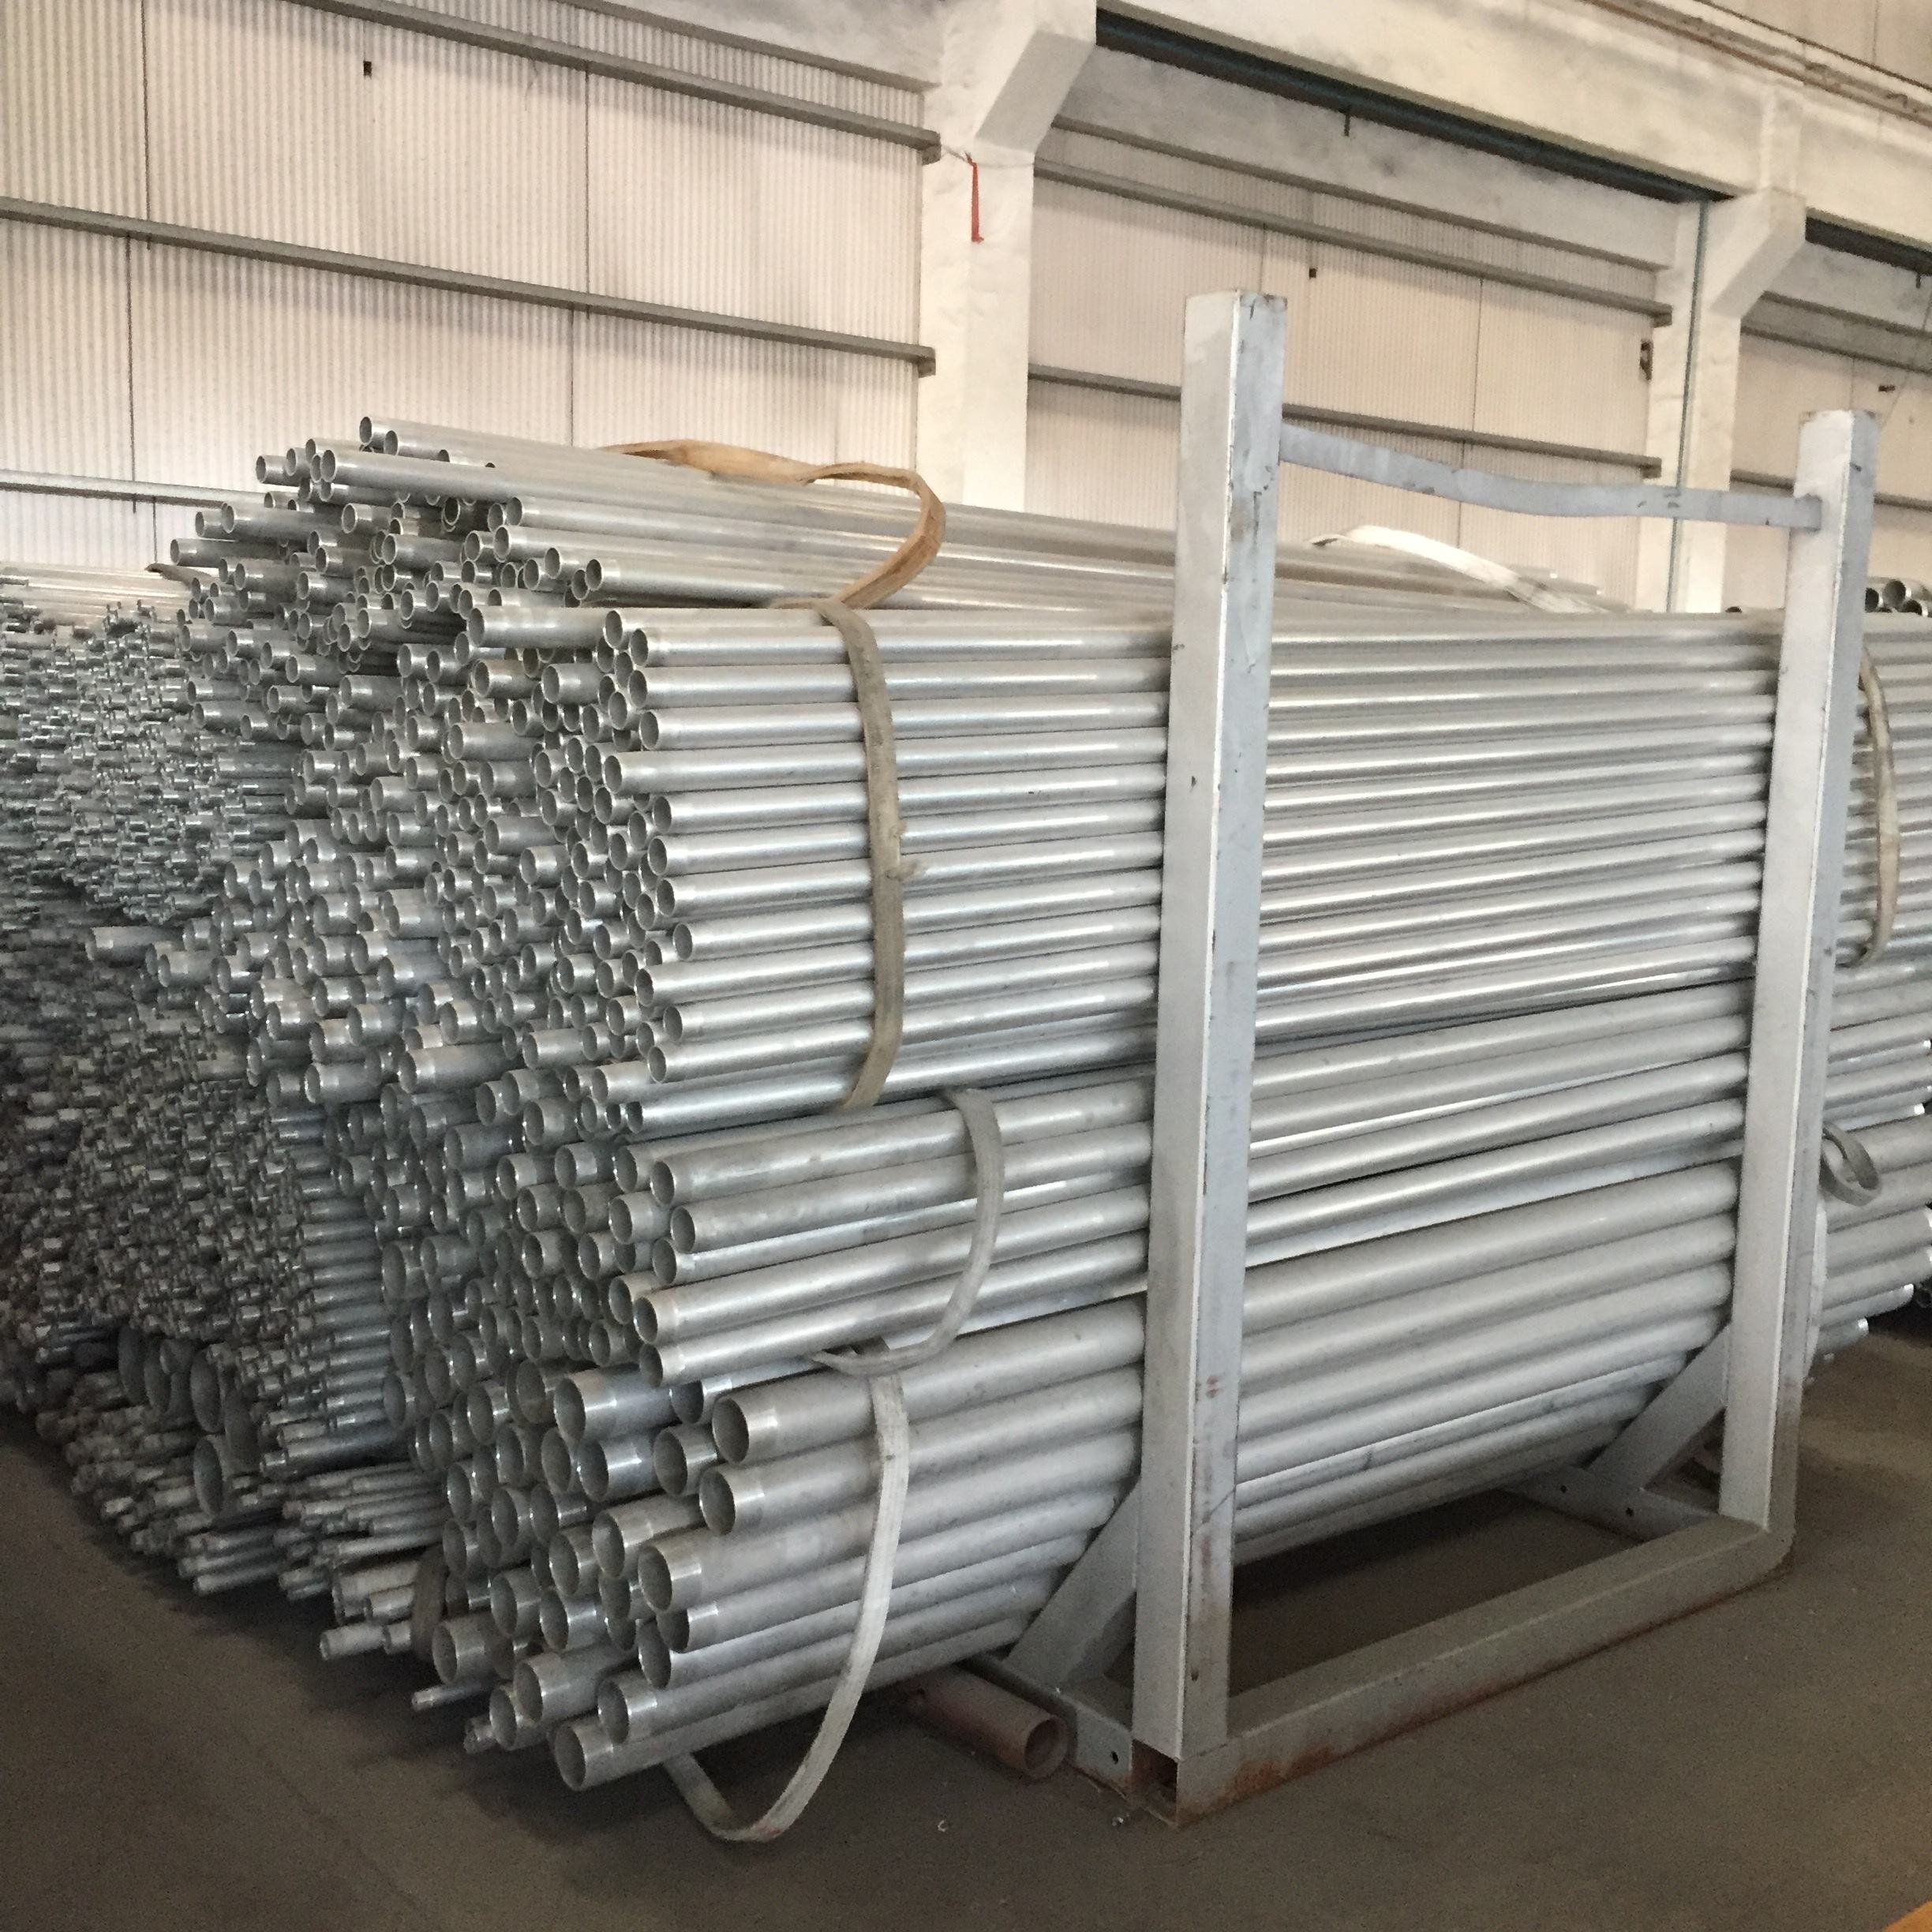 East Conduit IMC Conduit rigid steel tube of high-strength steel coil ERW welded pipe with ANSI C80.6 UL1242 standard